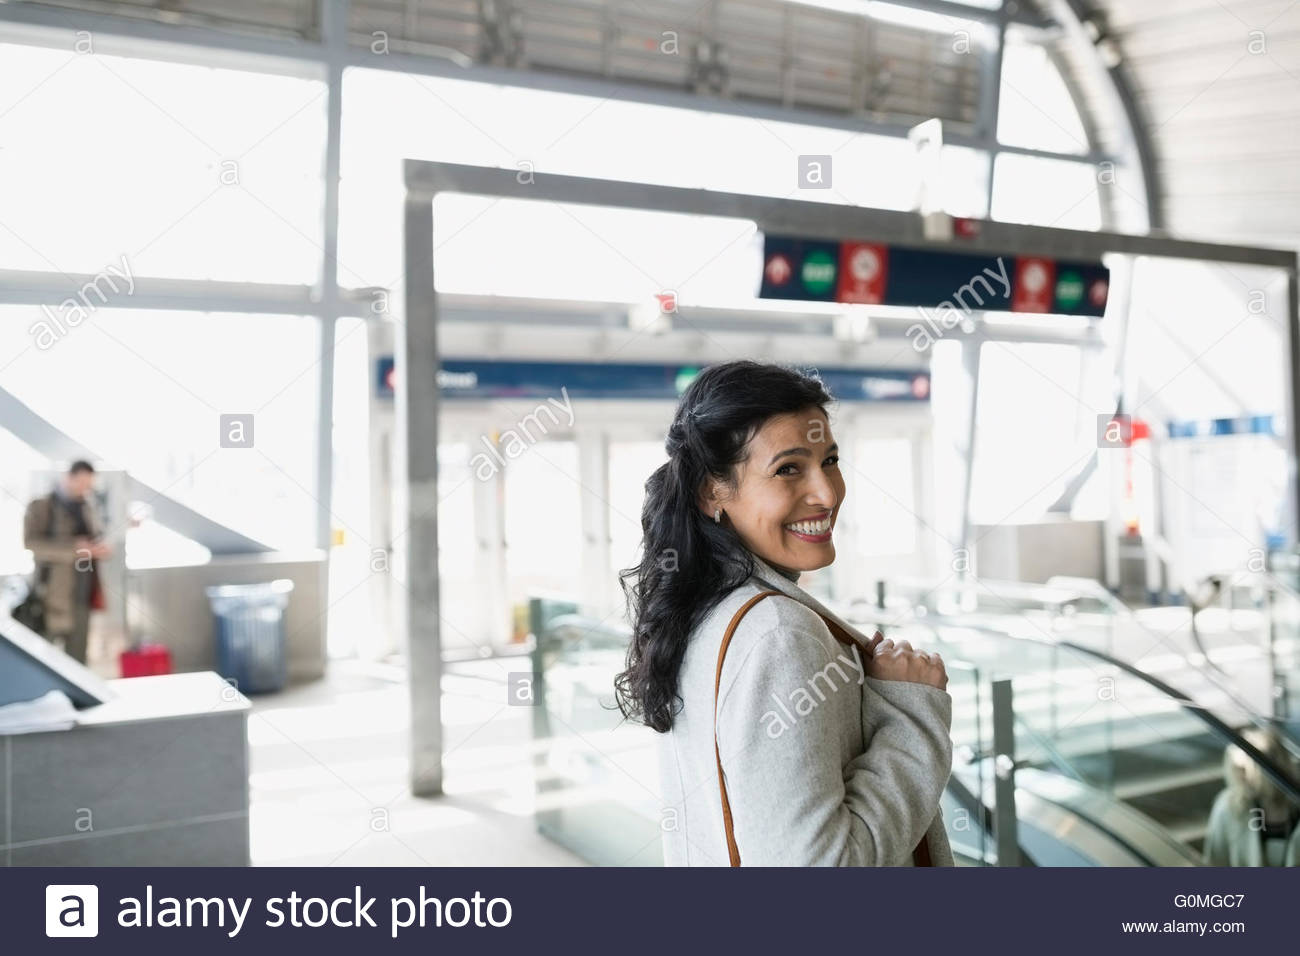 Portrait smiling woman at train station - Stock Image